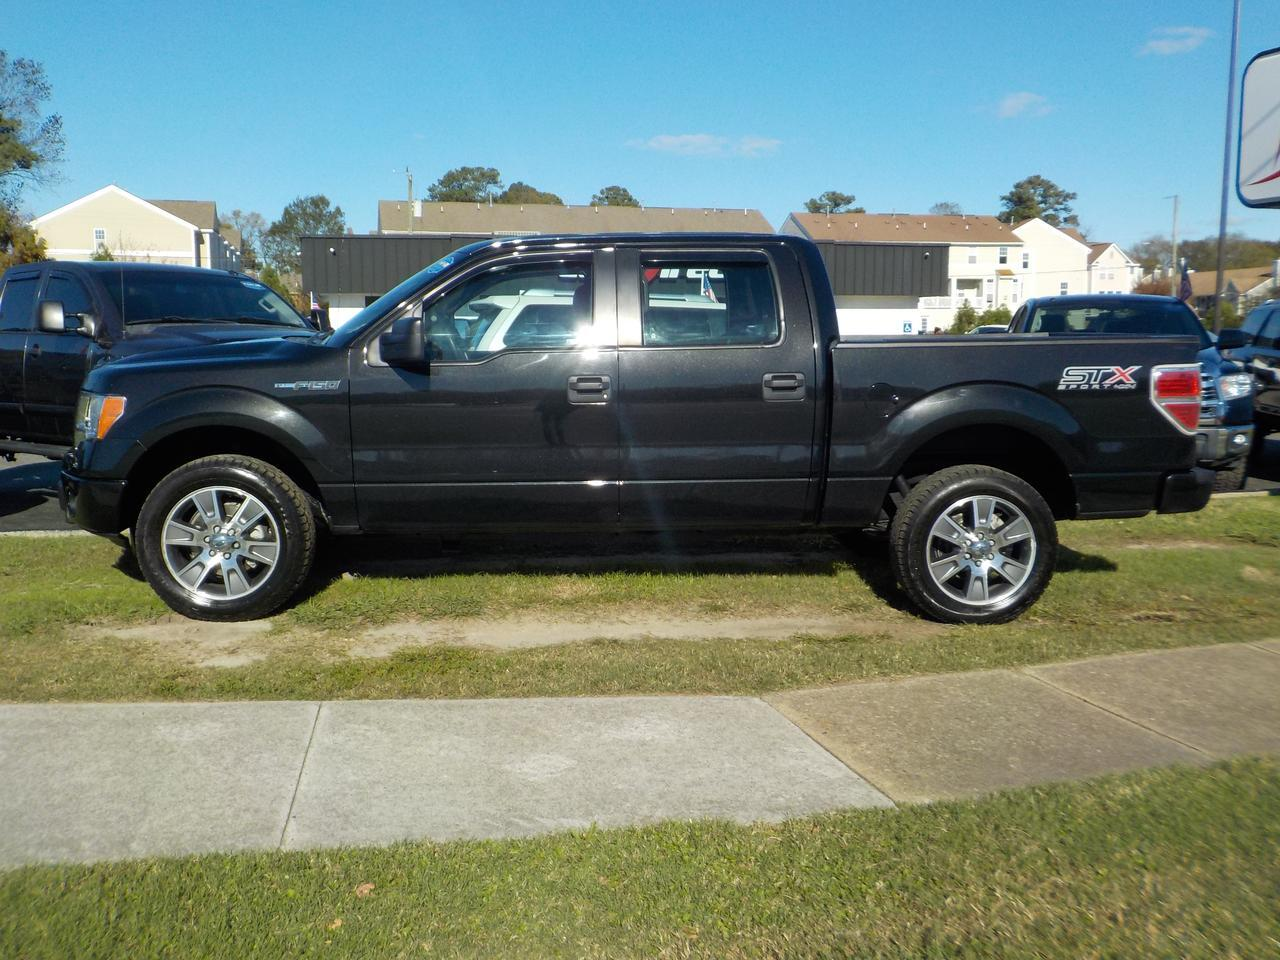 2014 FORD F-150 STX SUPERCREW 4X4, BLUETOOTH, REMOTE START, TOW PACKAGE, BEDLINER, EXTRA CLEAN! Virginia Beach VA